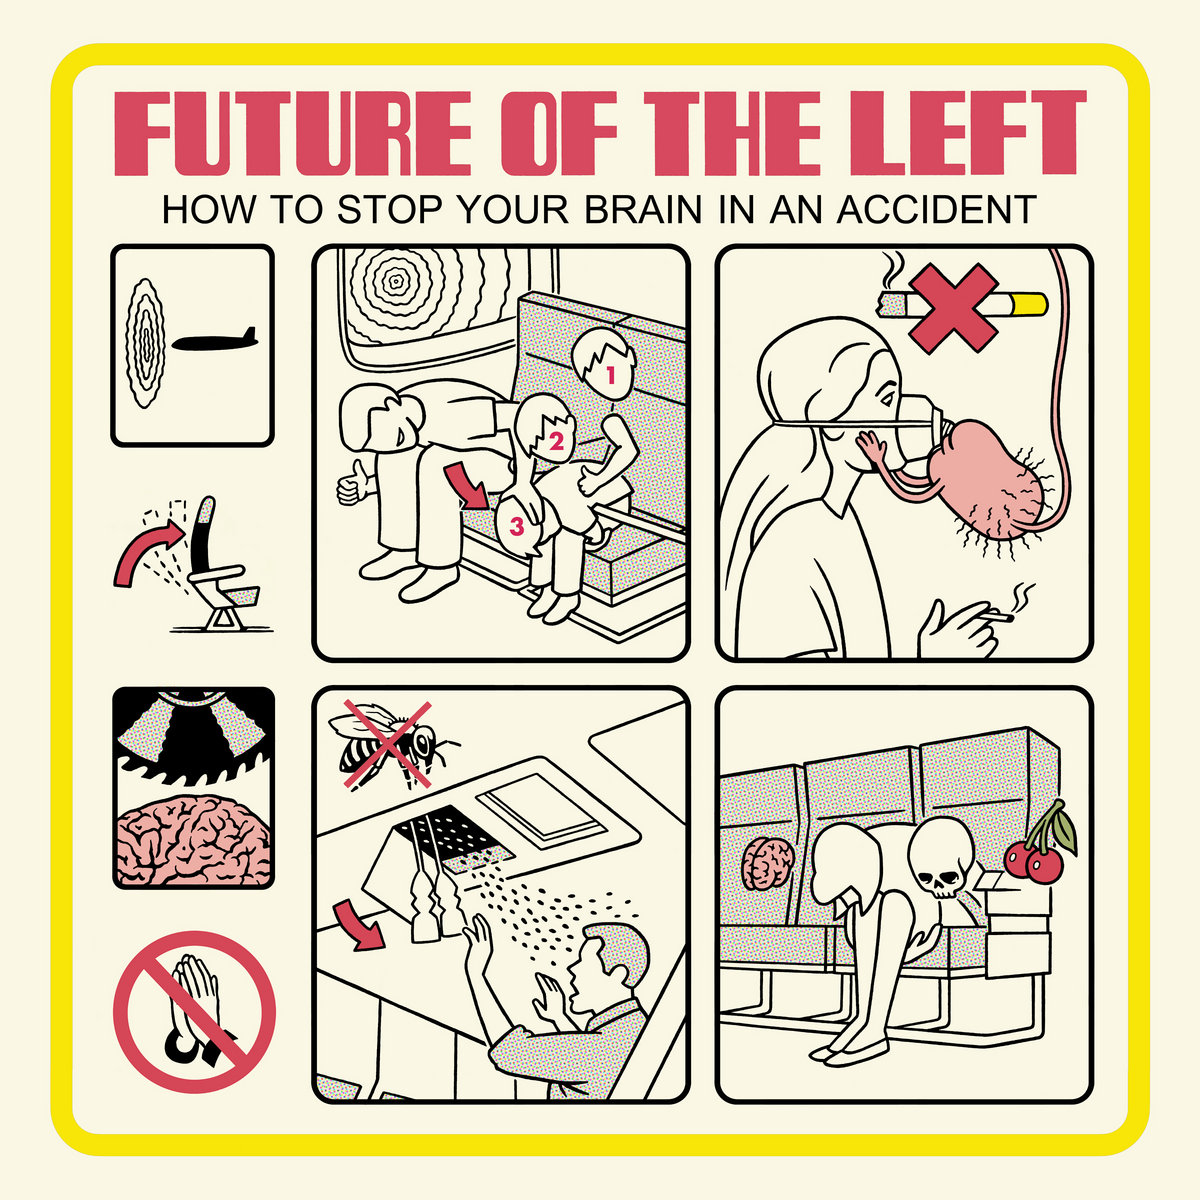 how to stop your brain in an accident | future of the left